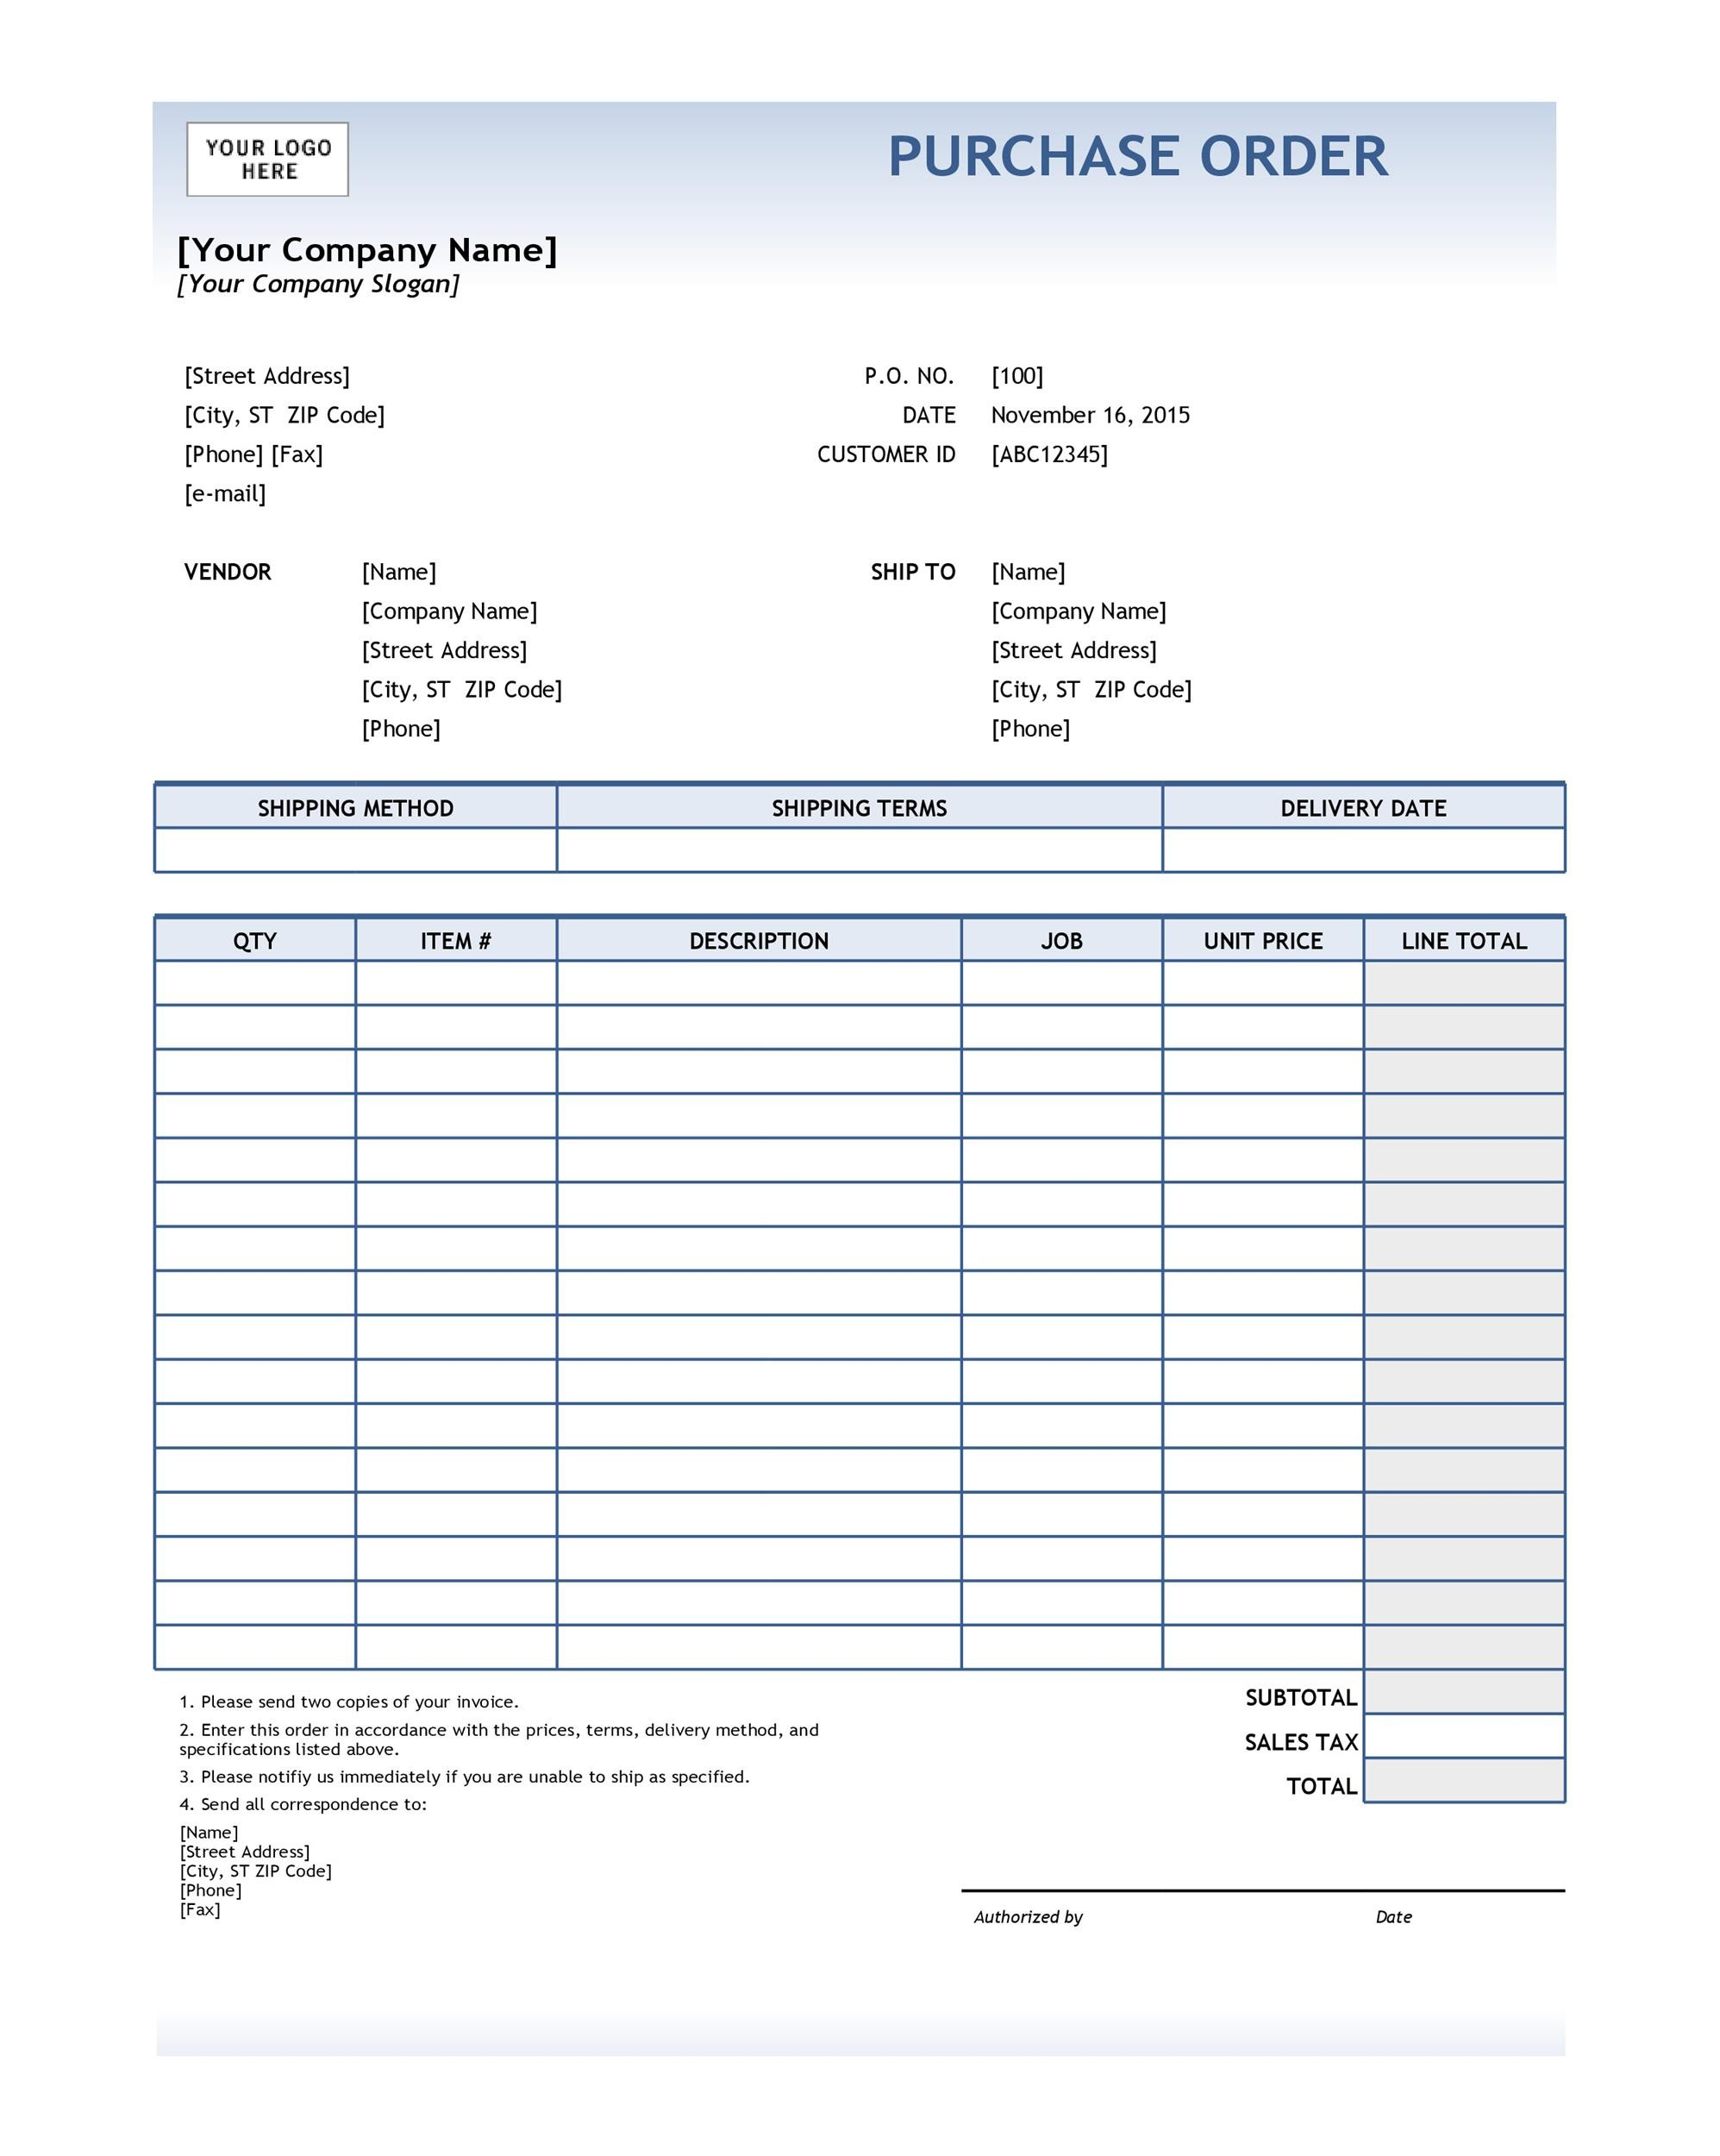 download purchase order template microsoft word  37 Free Purchase Order Templates in Word